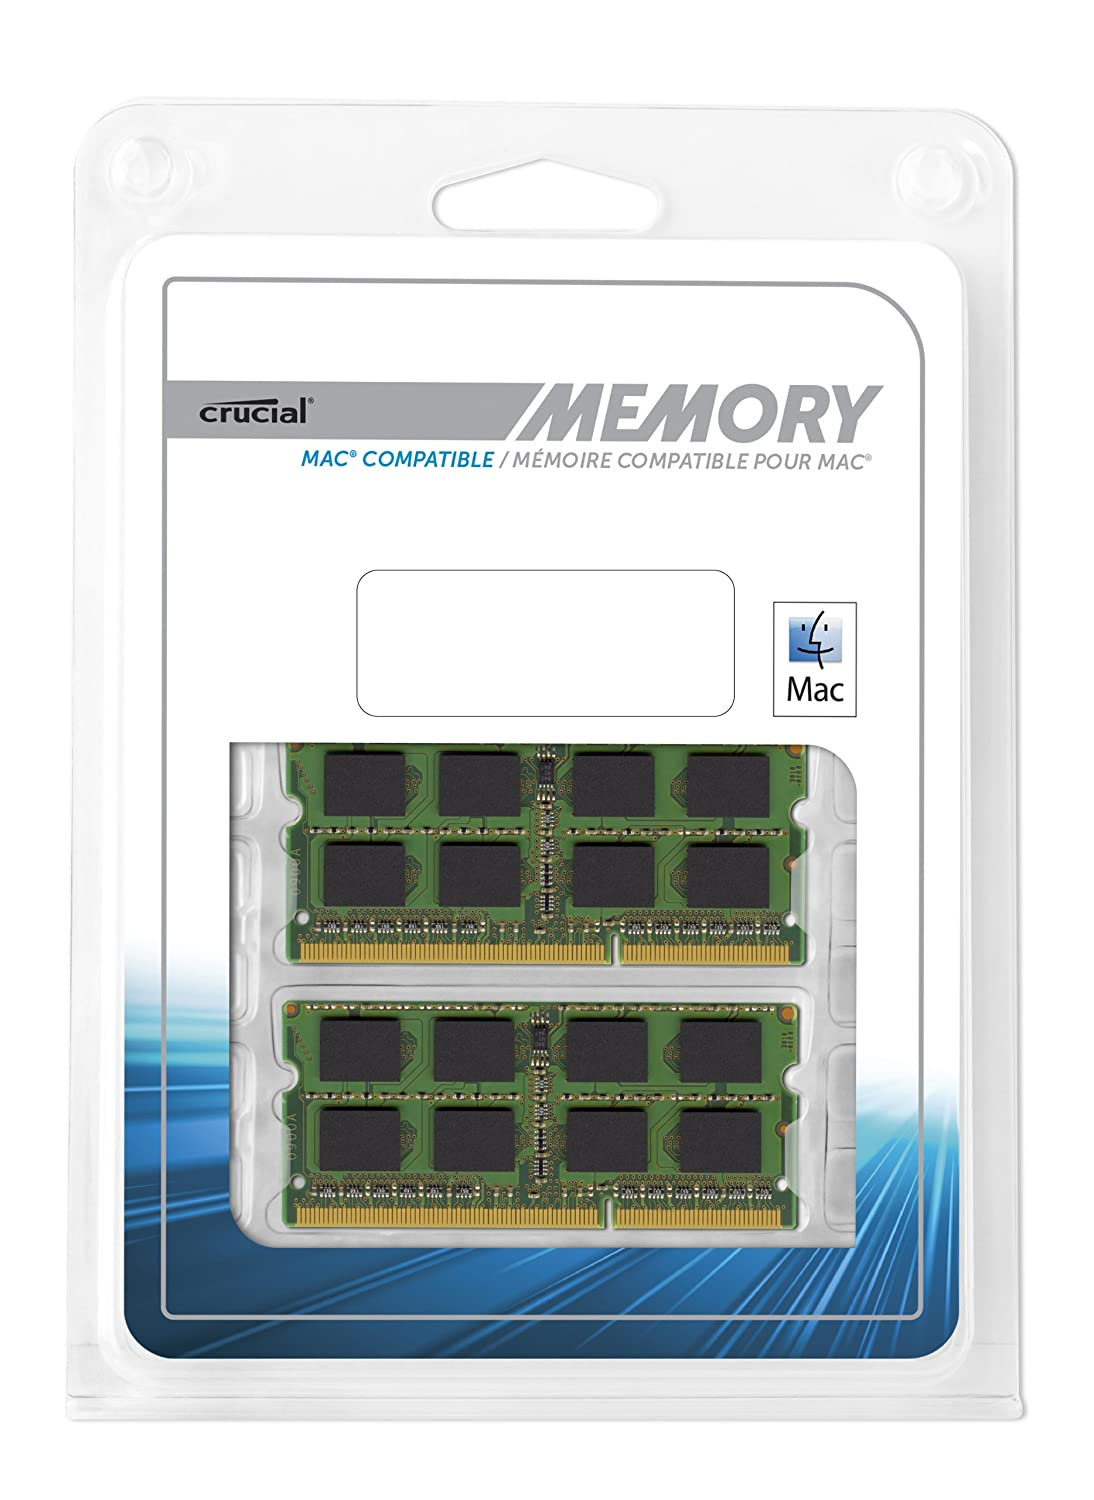 Crucial Ct2c2g2s800m 4 Gb Kit 2 X Ddr2 800mhz Ram 1gb Pc 6400 Dan 5300 Pc2 Cl6 Sodimm 200 Pin For Mac Computers Tablets